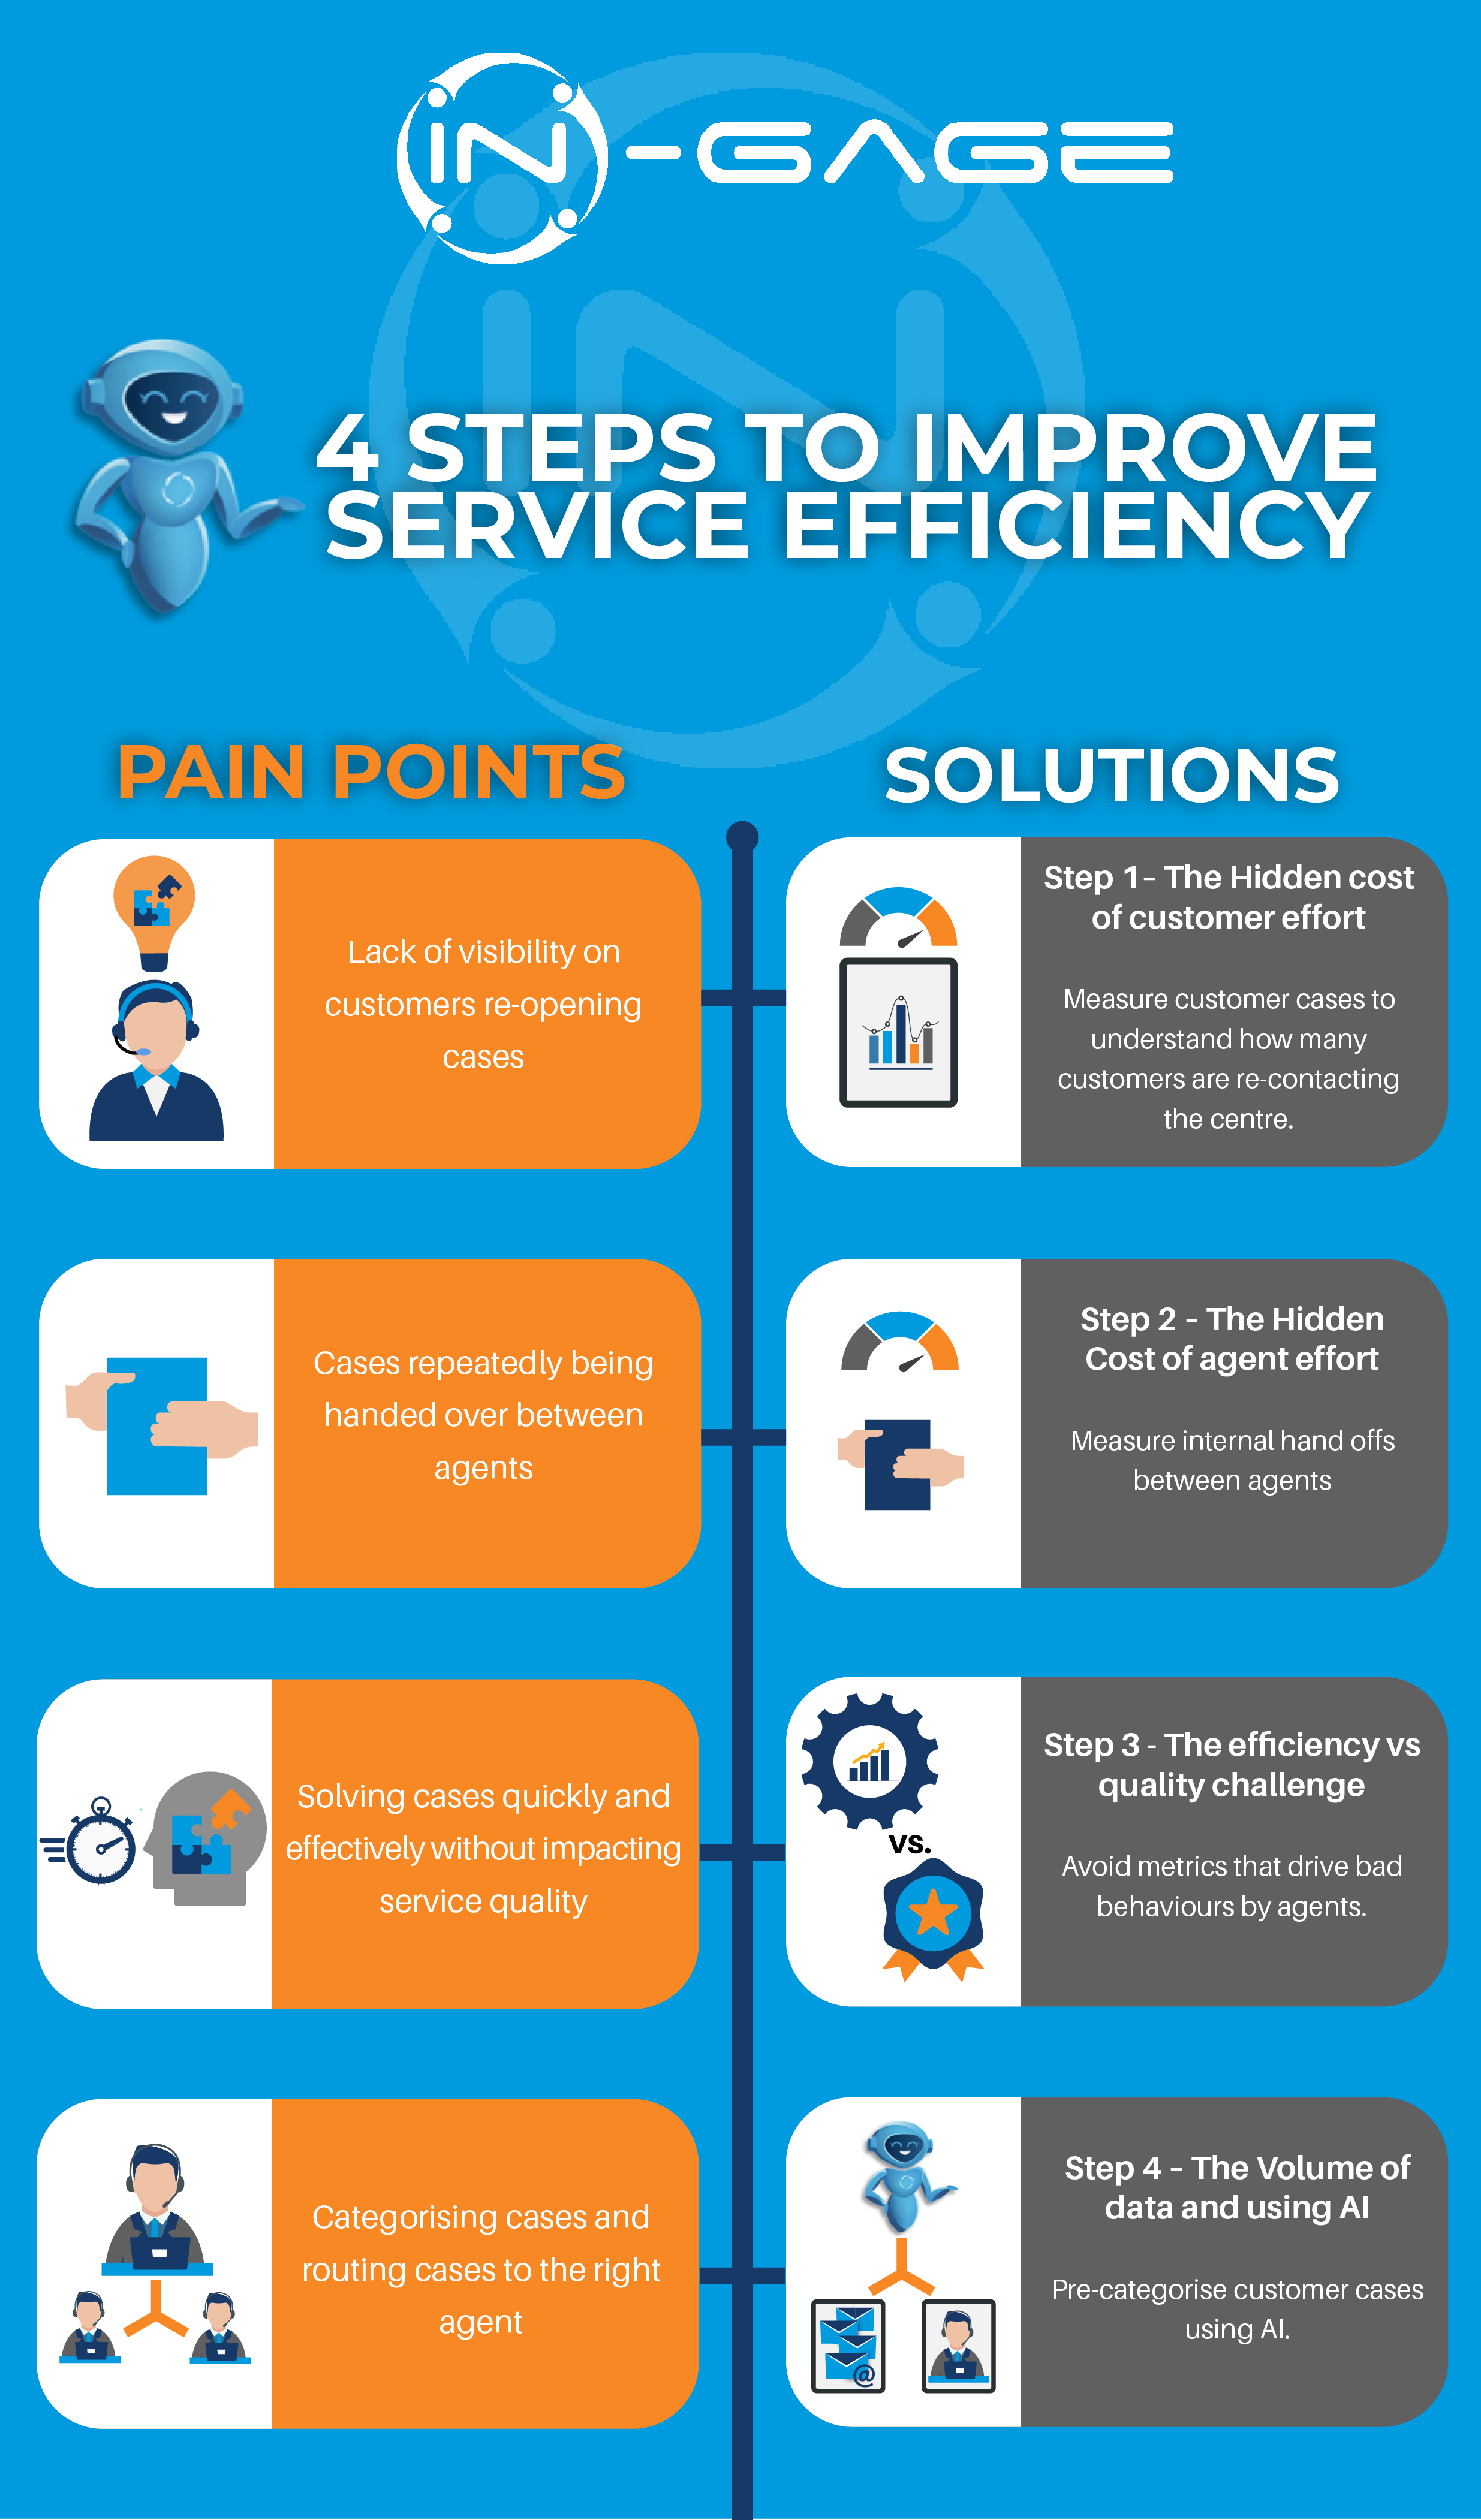 The 4 Tips to Improve Service Efficiency in Salesforce